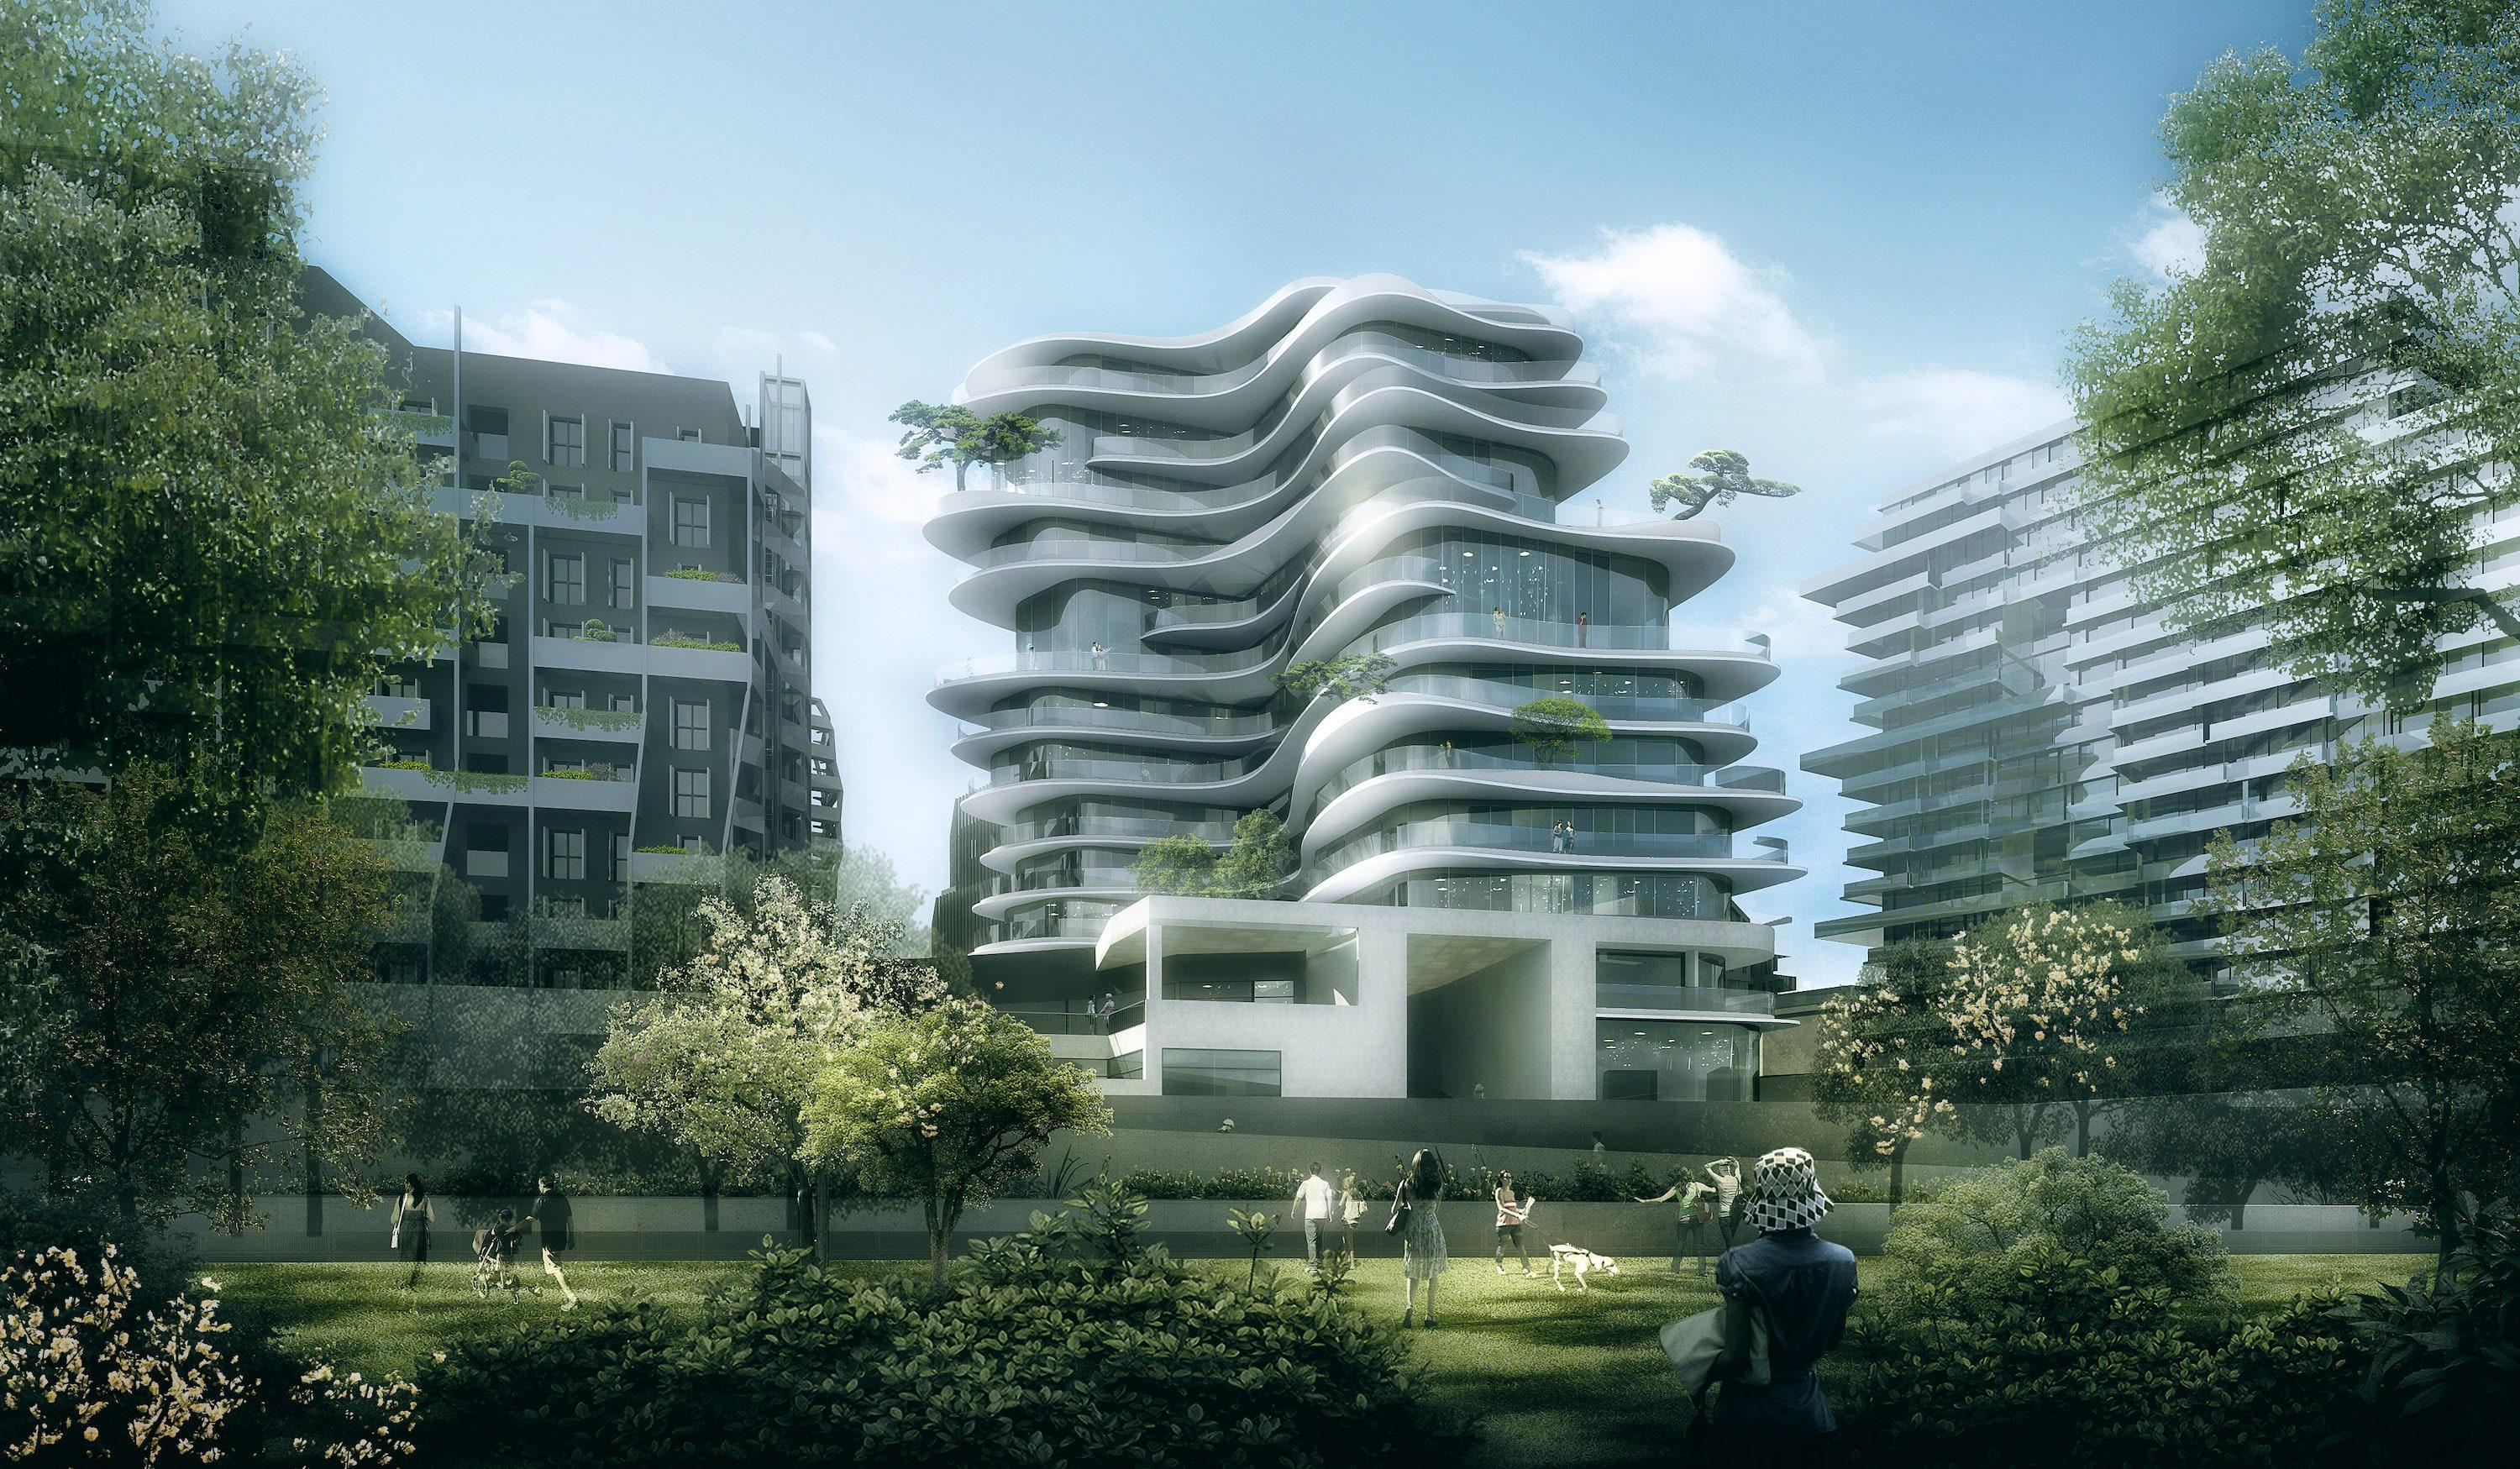 Paris is a city steeped in classical architecture. Yet that won't be the case when MAD Architects' UNIC building is completed in 2020. Led by the Chinese-born virtuoso Ma Yansong, the residential structure will be located within the verdant setting of Martin Luther King Park. Playing off this theme, Yansong's undulating design is meant to blur the line between building and nature. The 13-story building is tall enough so that at the top floors, homeowners will have clear views of the Eiffel Tower (located to the southwest of the new residential building). Attached to MAD Architects' sleek structure will be an adjacent public housing project, as well as direct access to major metro and bus stops. While this is the Chinese firm's first residential project in Europe, we have a strong feeling it won't be the last.